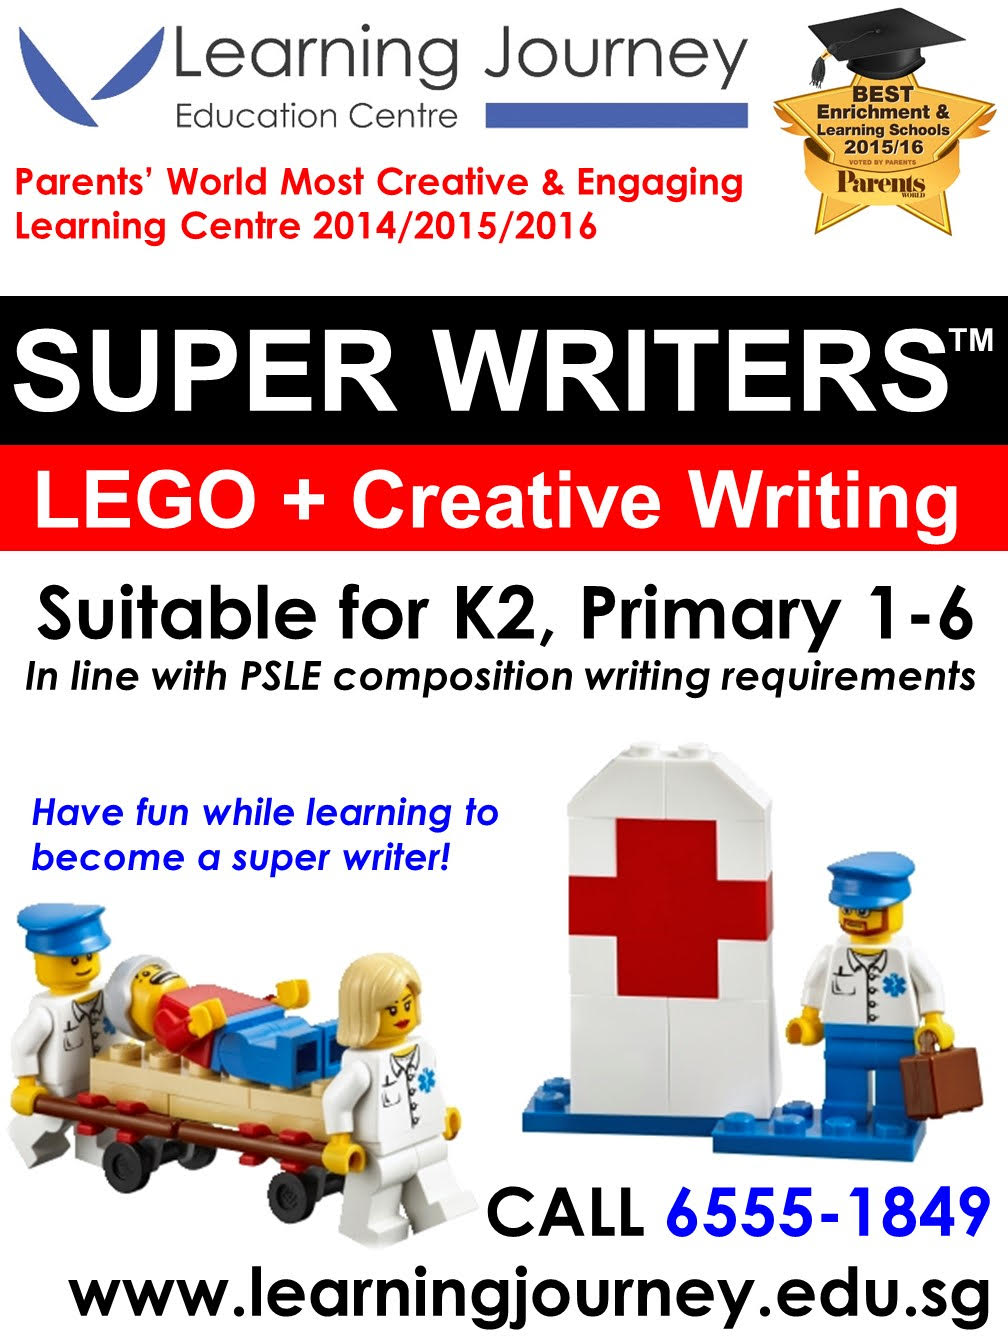 lego essay Learn how to write a killer book essay first, in 5 easy steps  going back to the  lego analogy, you may not know what kind of pirate ship.